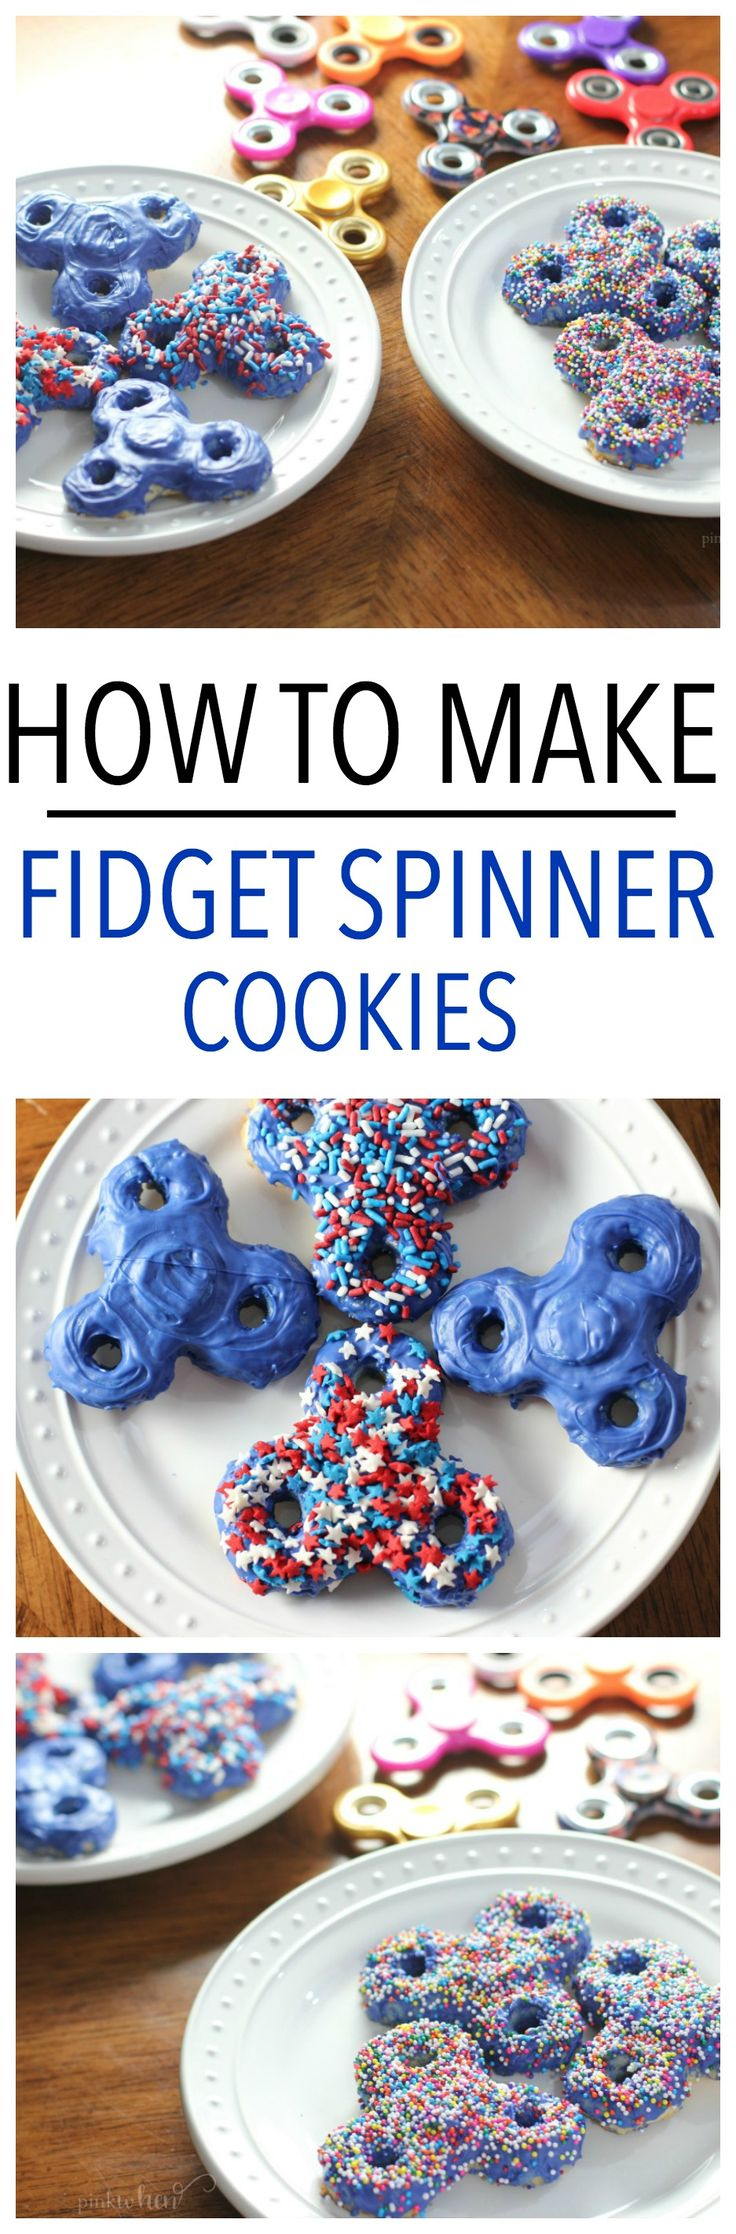 Fidget Spinner Cookies! It's the biggest Summer craze, and we are sharing our trick on how to make the BEST Fidget Spinner Cookies in these easy to follow videos!